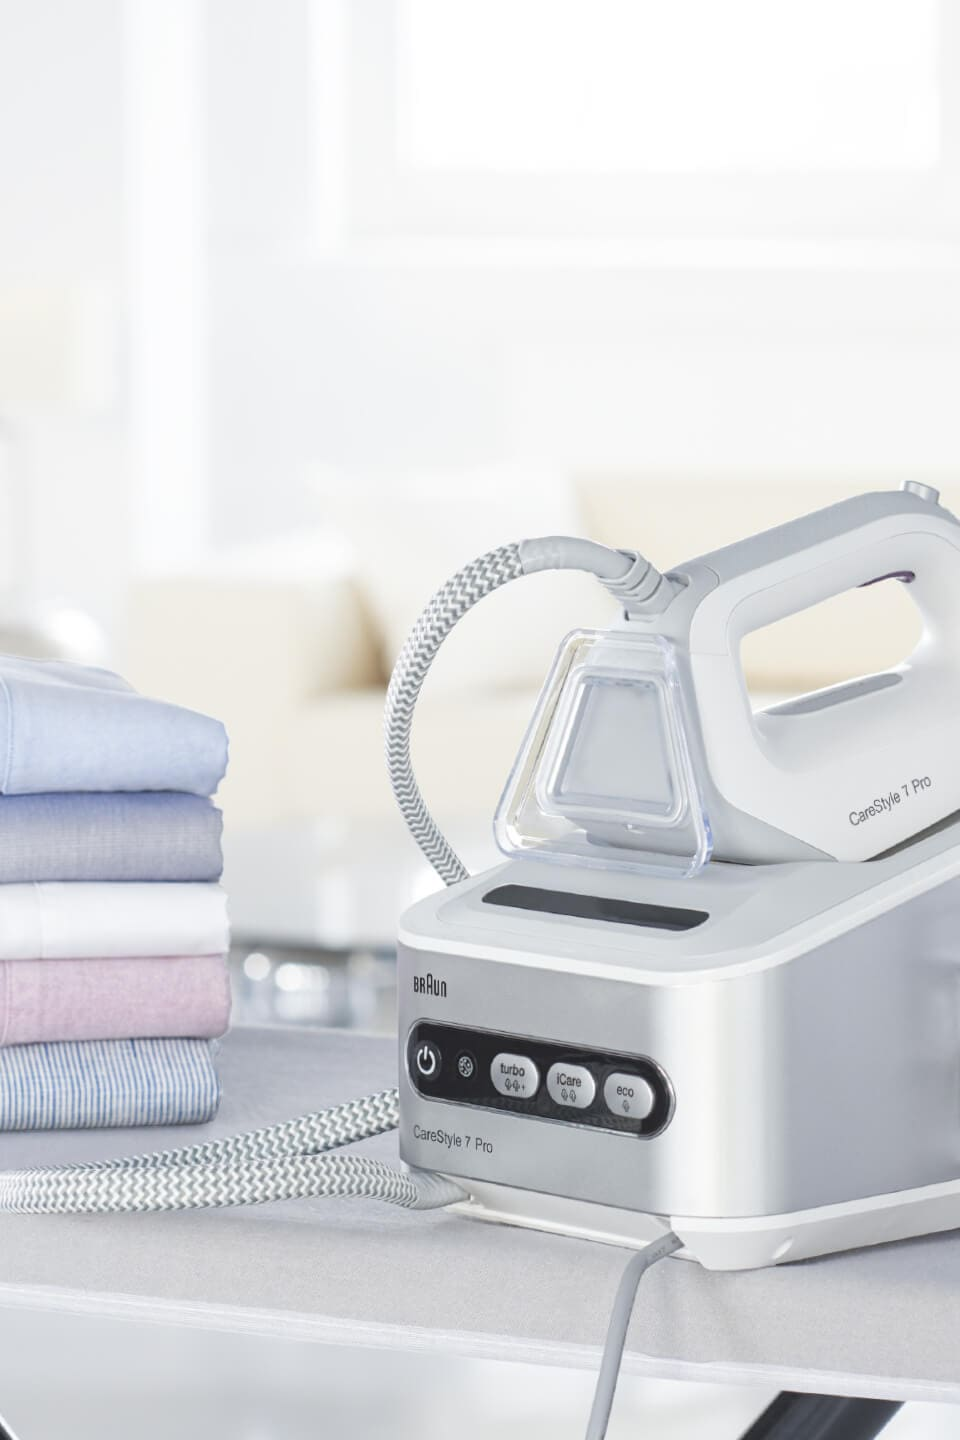 Braun CareStyle 7 features